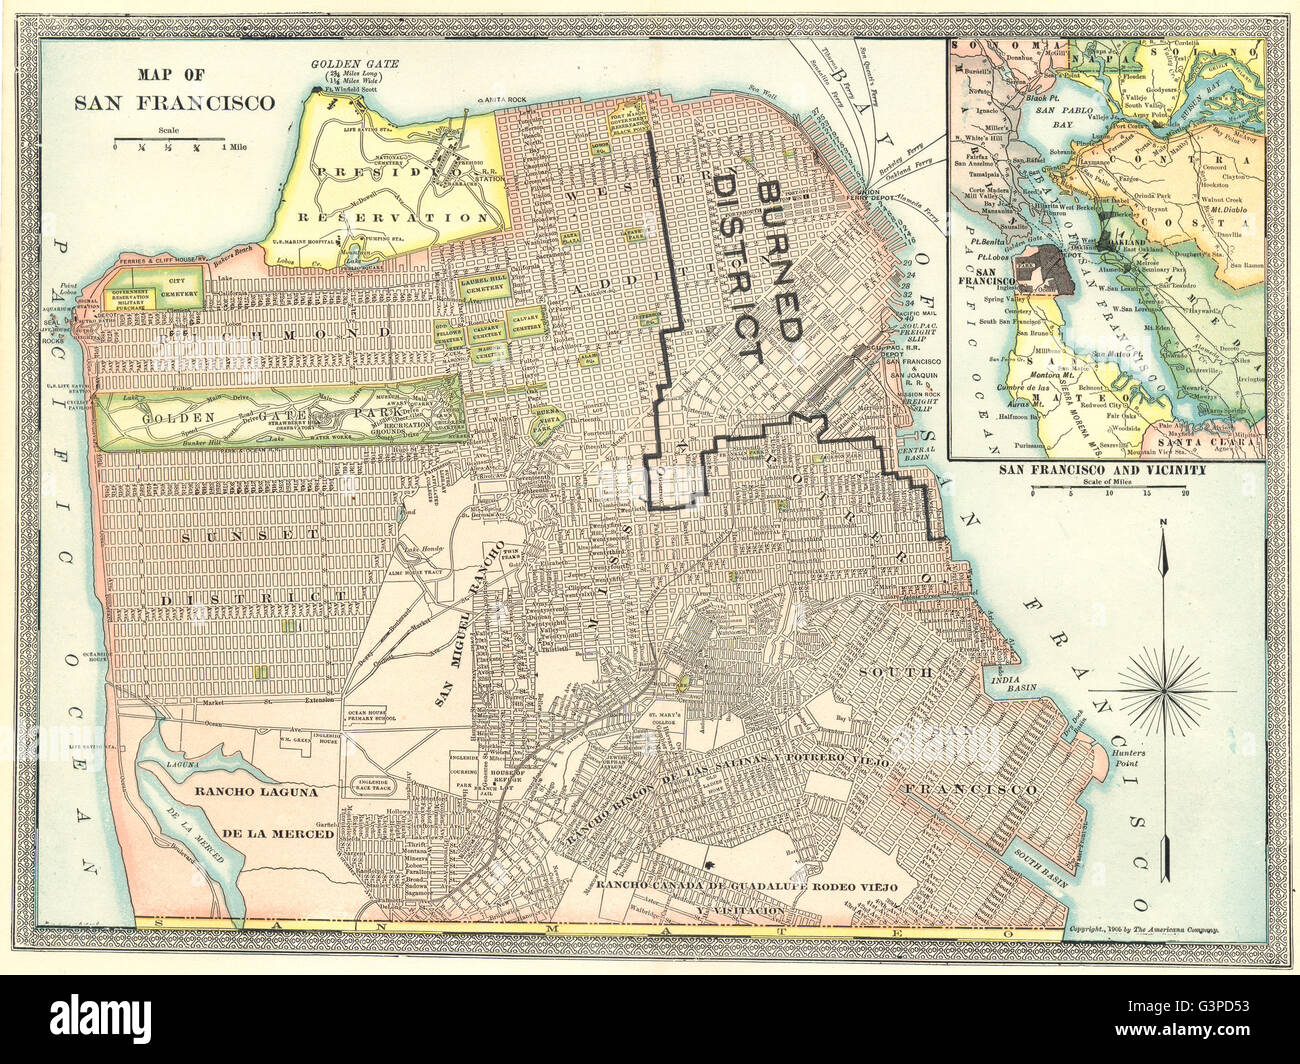 1906 Earthquake Map.San Francisco Town City Plan Showing Area Destroyed In 1906 Stock